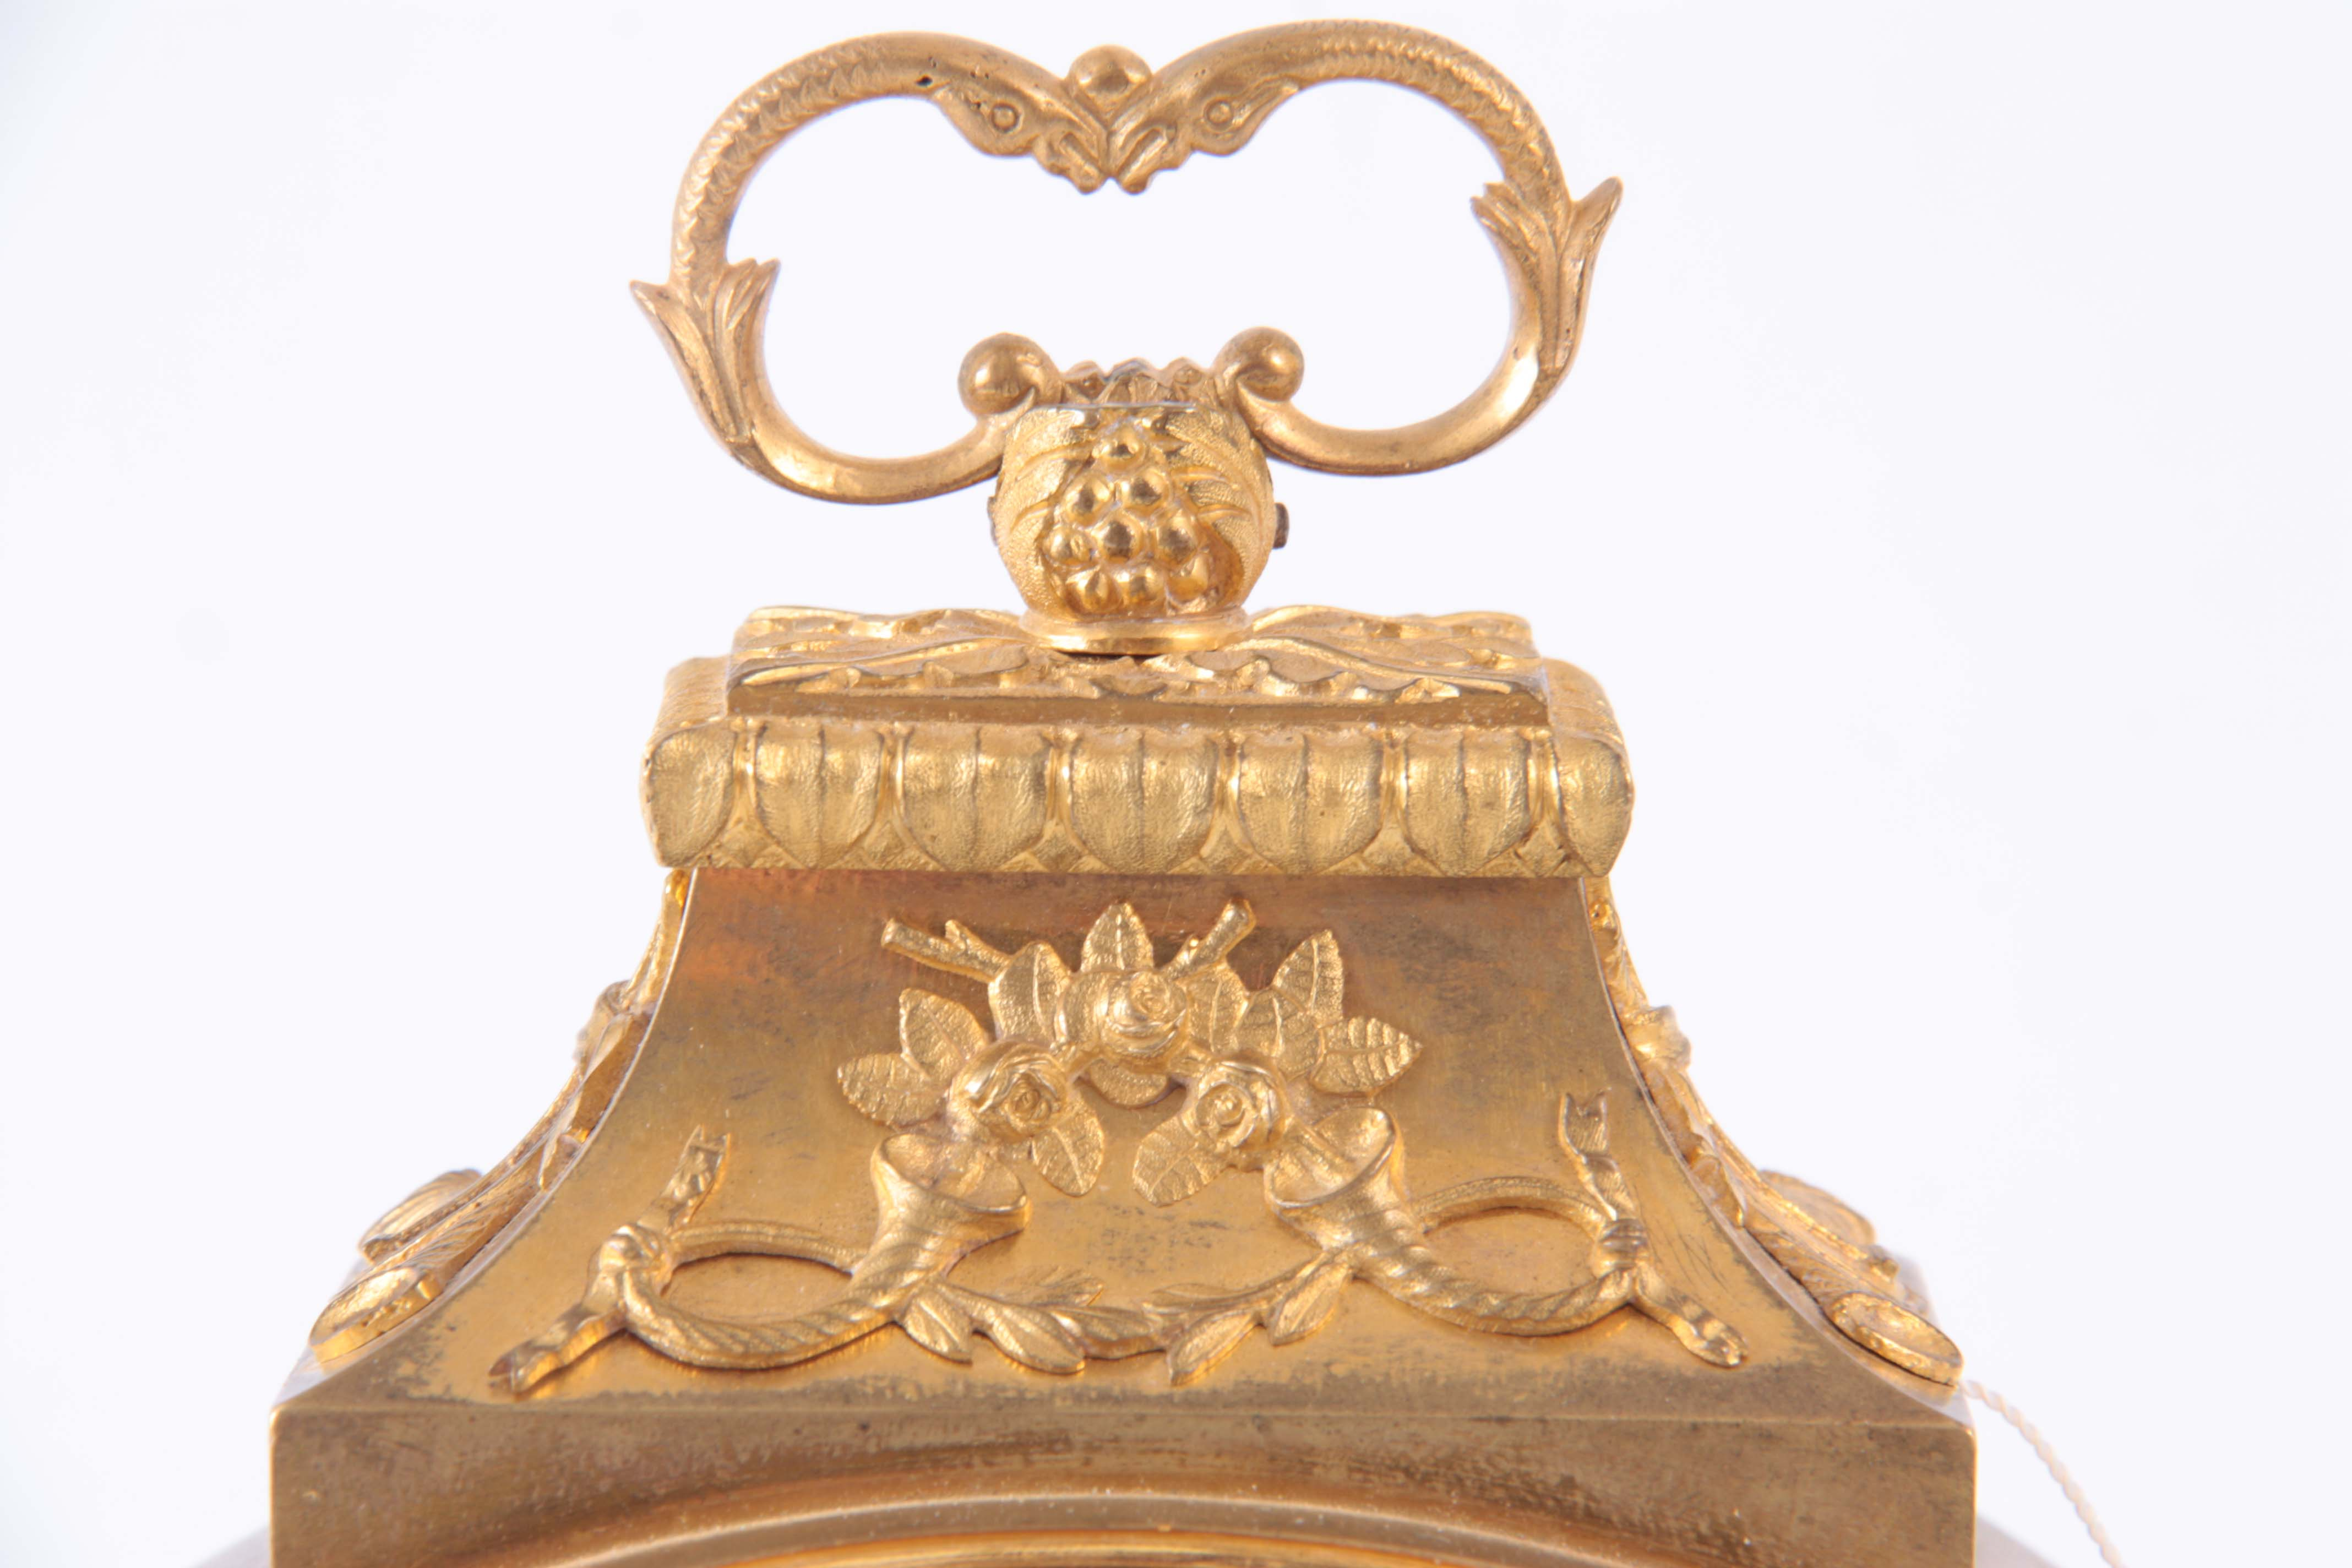 AN 18th CENTURY SWISS PENDULE D'OFFICIERS CARRIAGE CLOCK the ormolu case with applied mounts - Image 2 of 4